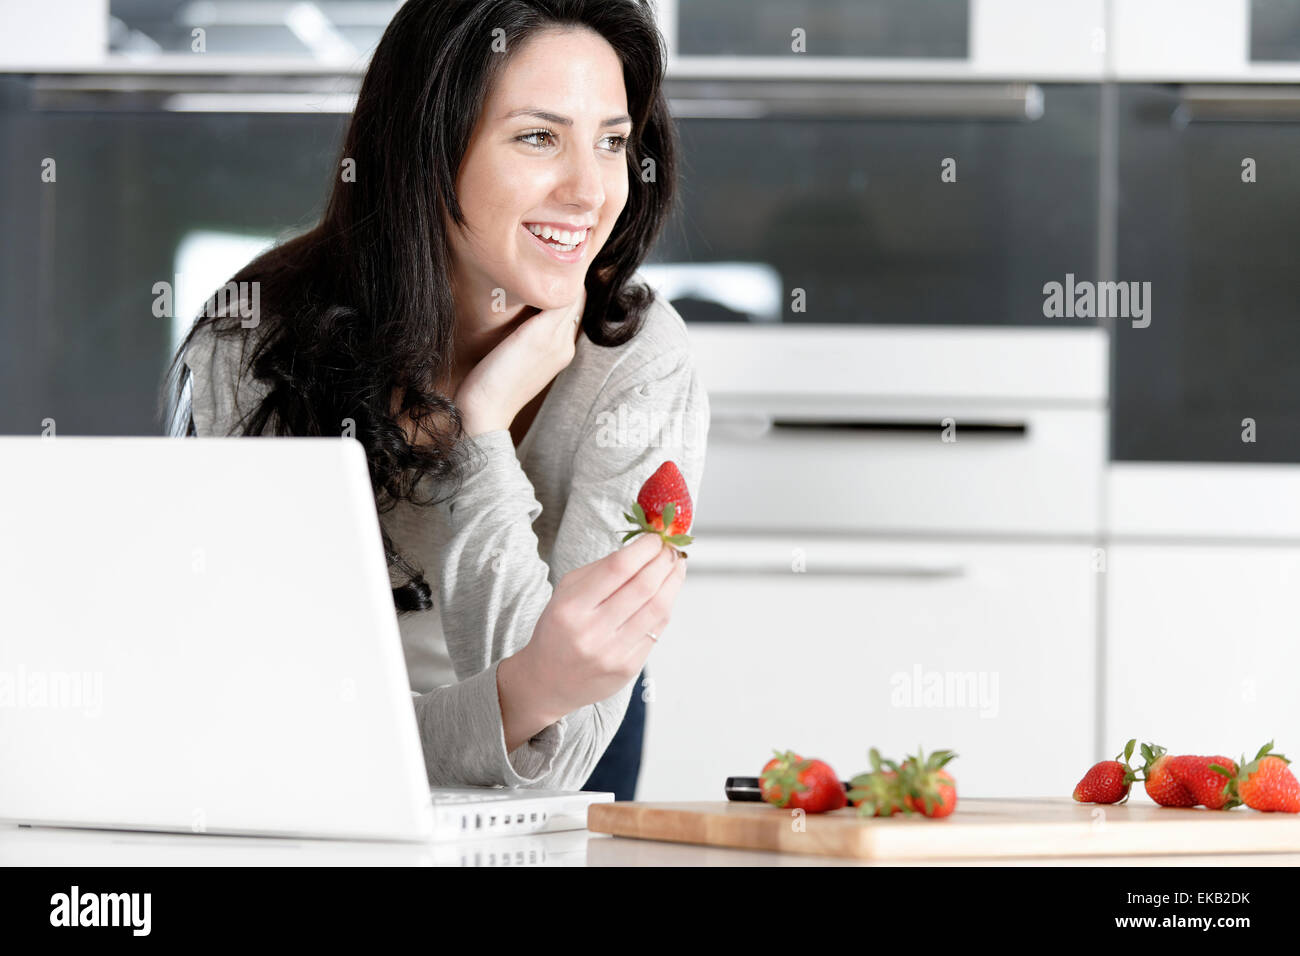 Woman in kitchen reading recipe Stock Photo: 80763359 - Alamy